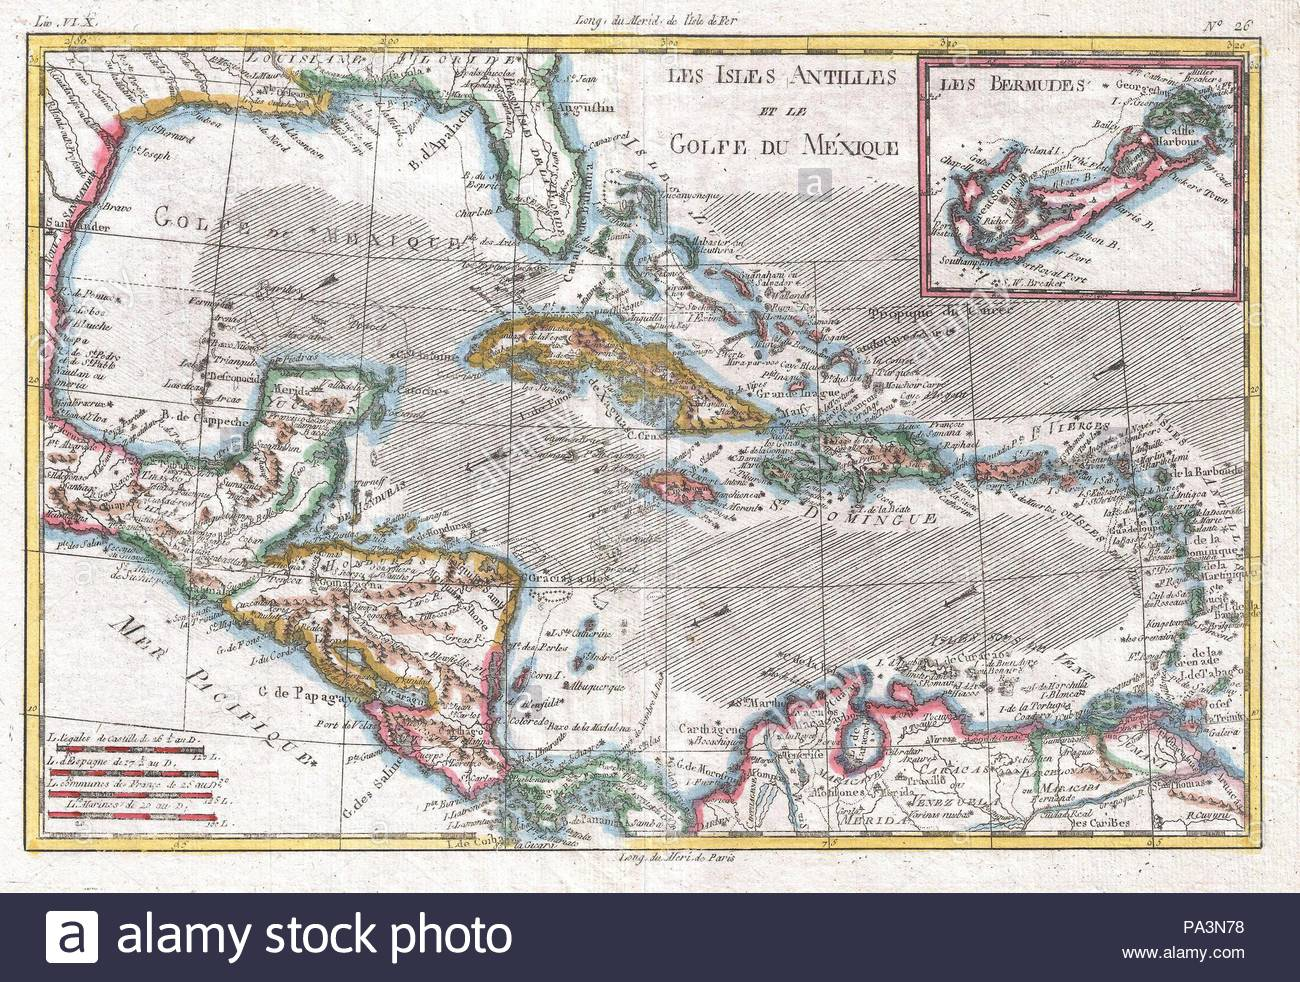 Mexico Map 1794.1780 Raynal And Bonne Map Of The West Indies Caribbean And Gulf